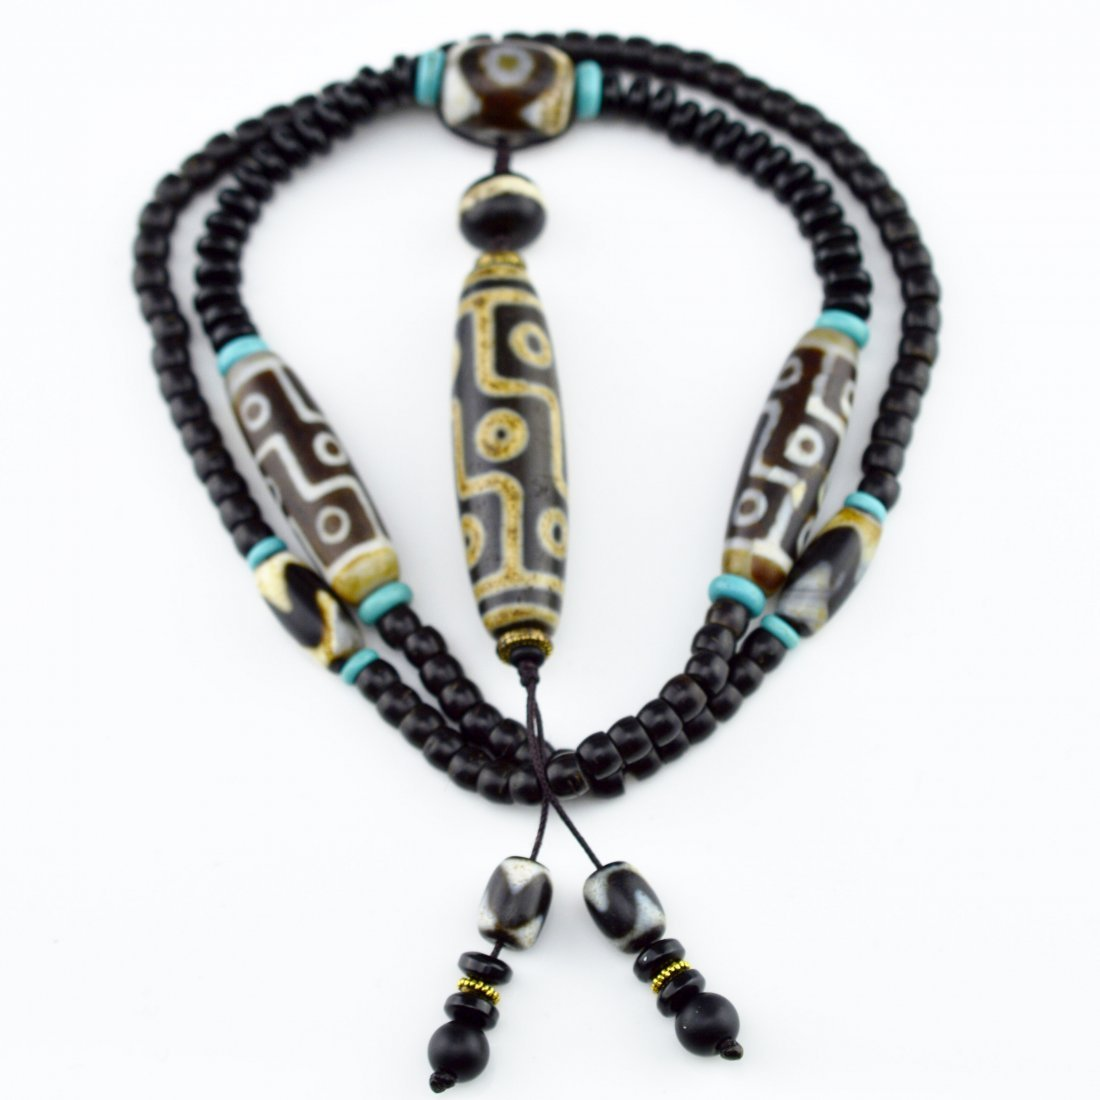 Nine-Eye Dzi Bead Necklace